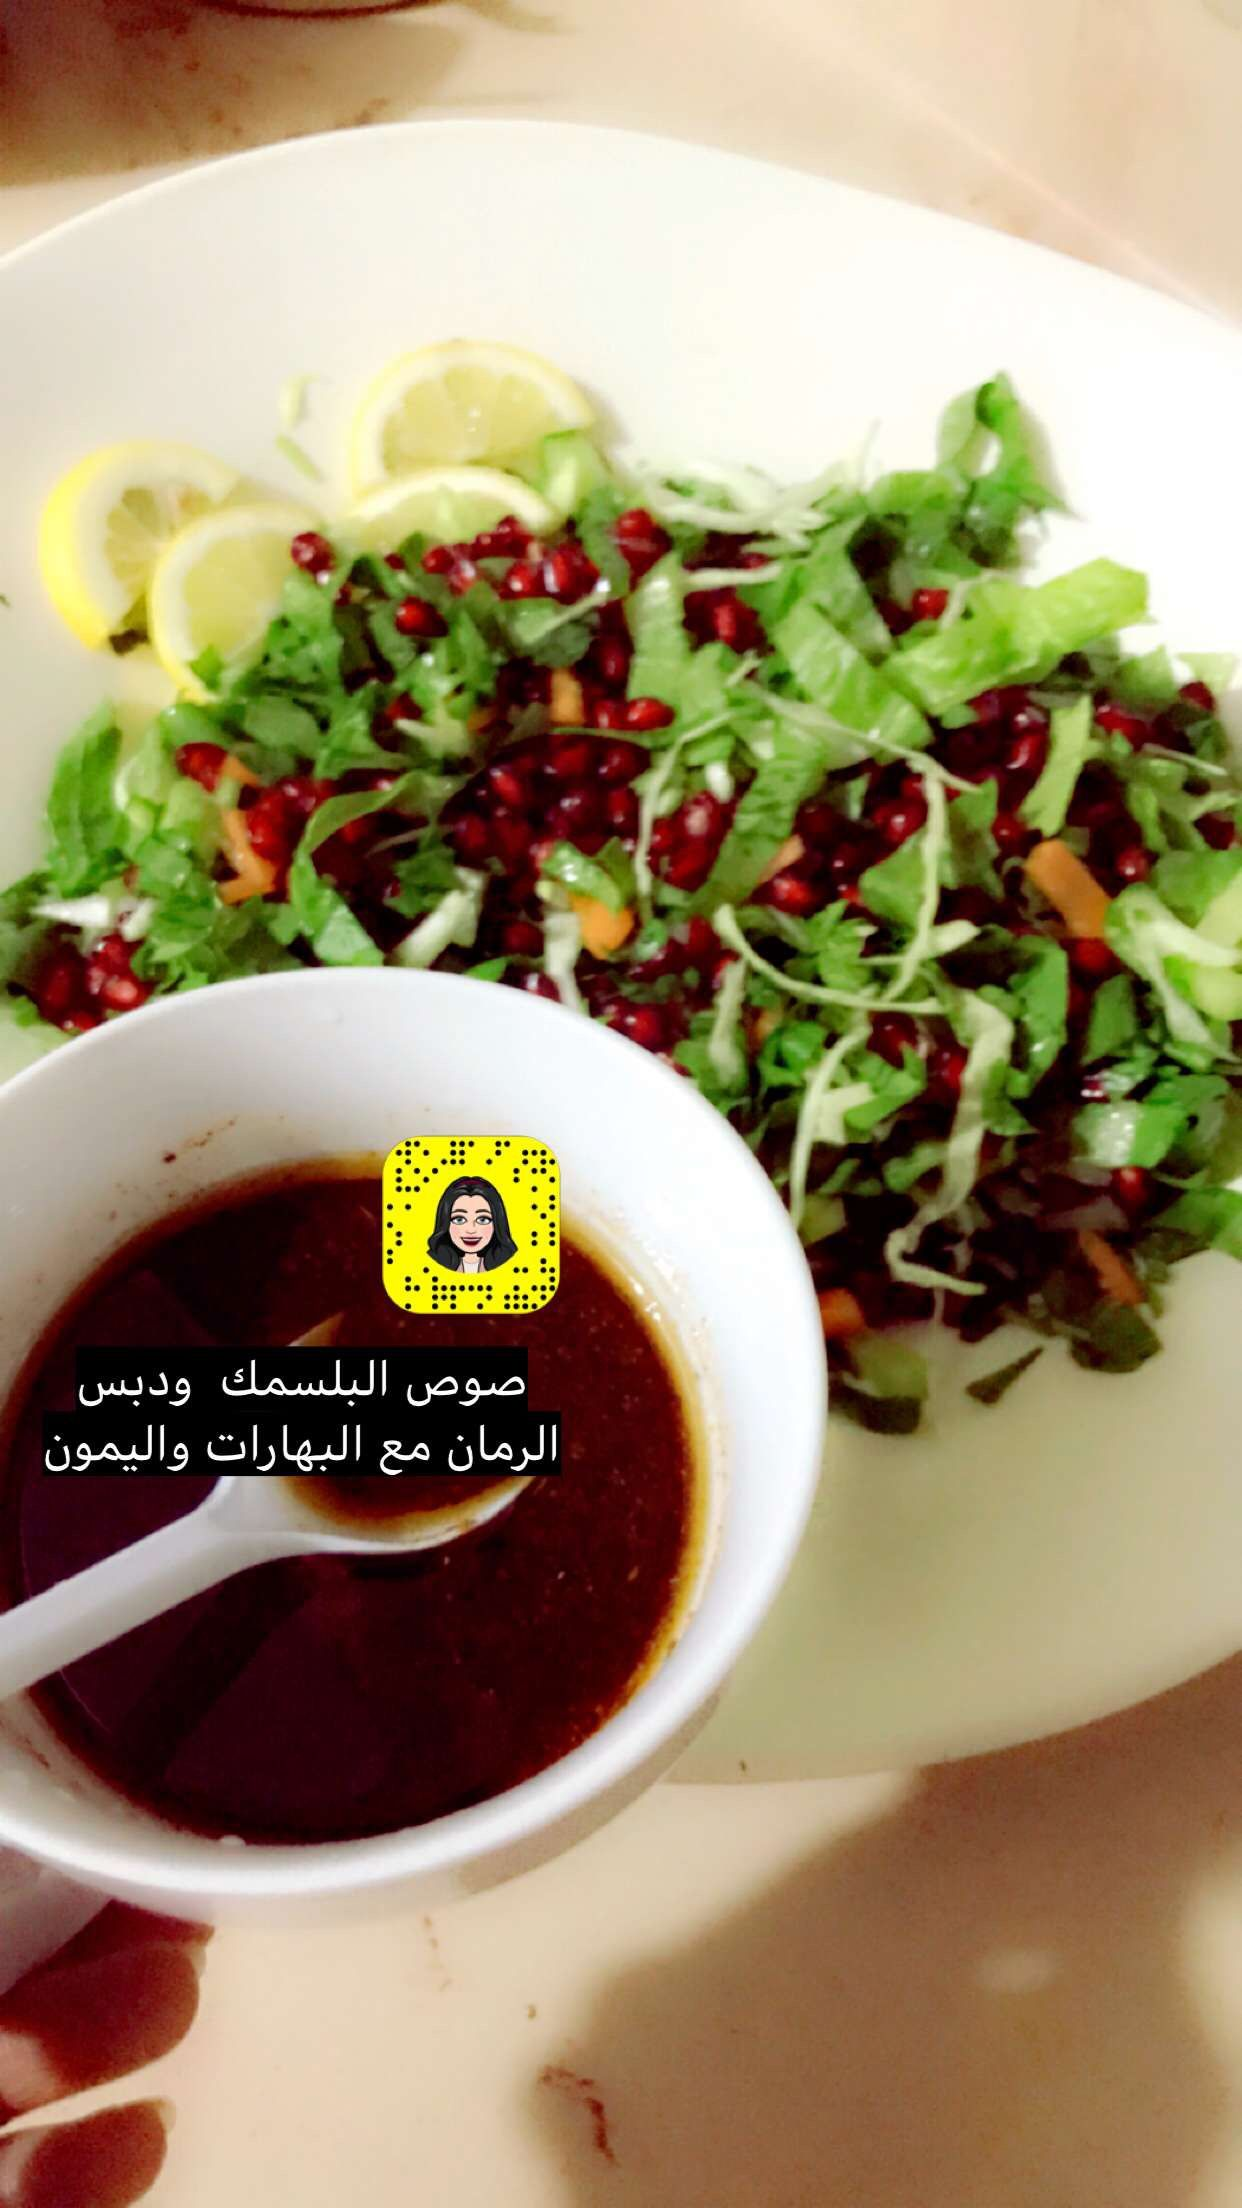 Pin By Safera On وصفاتي Food Soup Chili